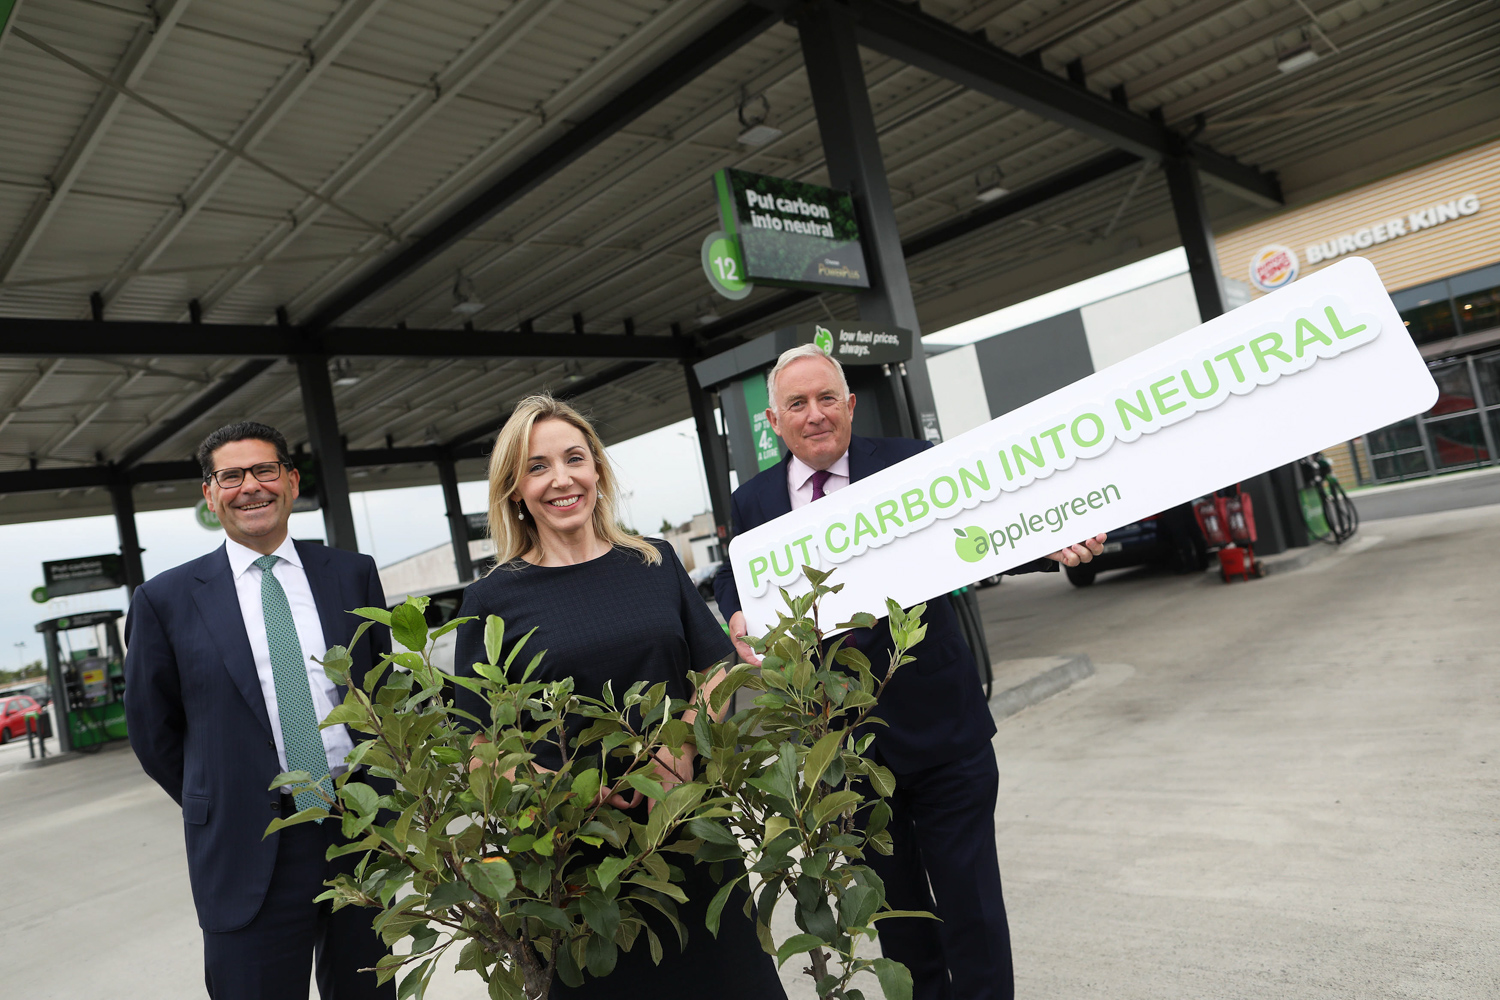 Car News   Applegreen wants to neutralise its carbon   CompleteCar.ie